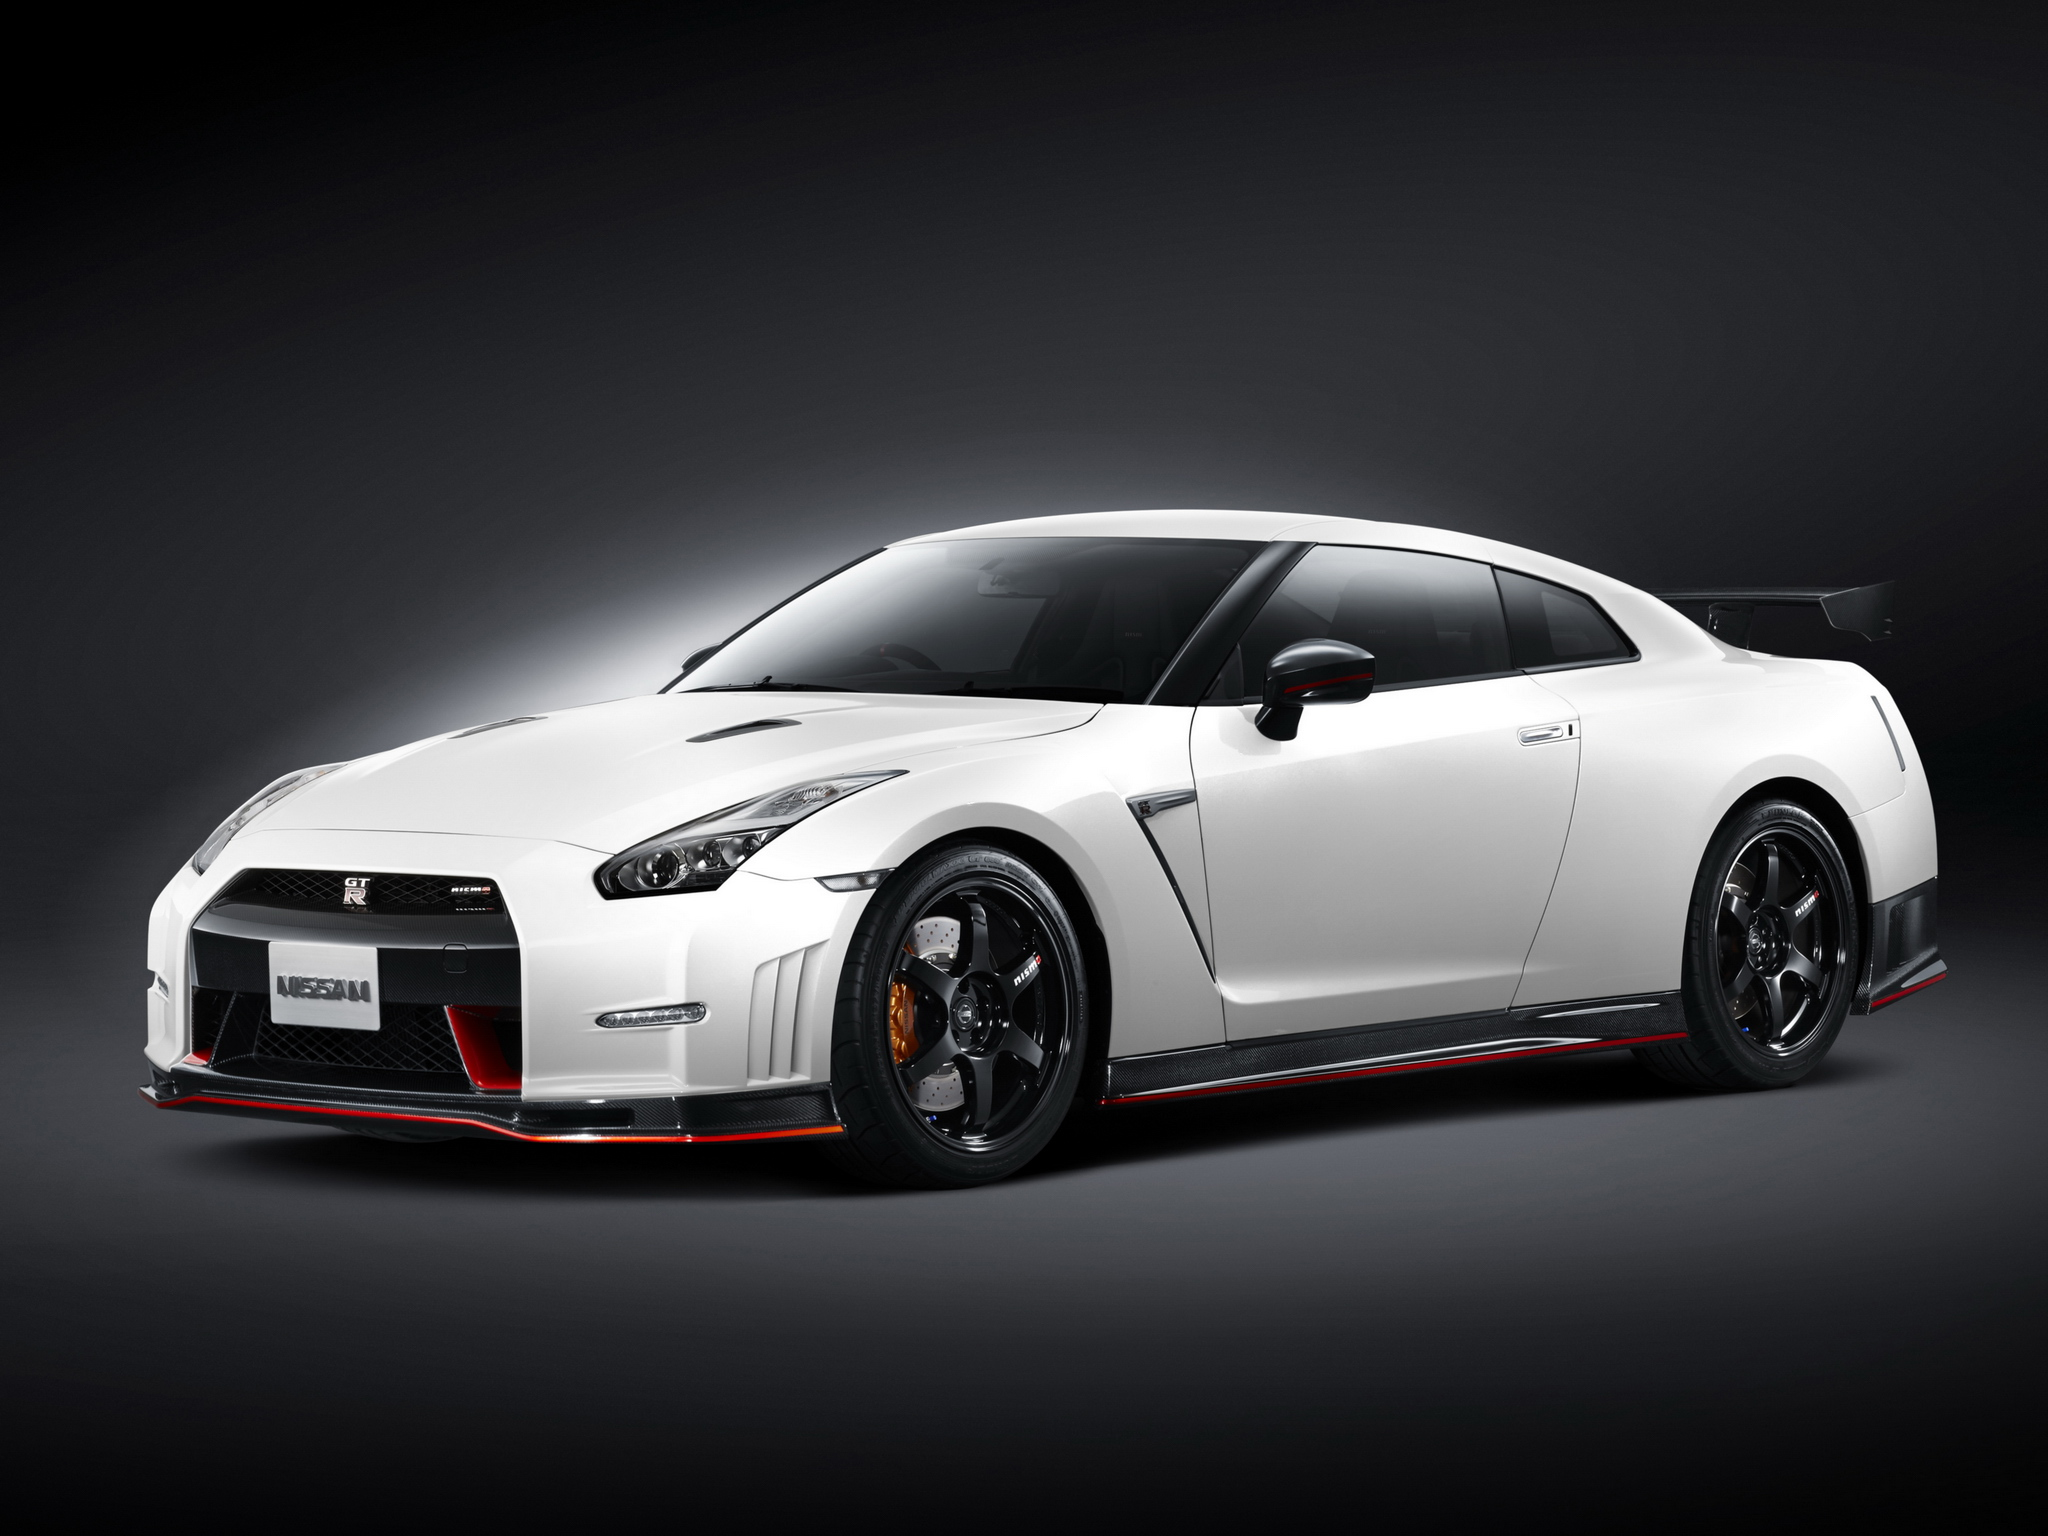 2014 nismo nissan gtr r35 supercar f wallpaper 2048x1536 194034 wallpaperup. Black Bedroom Furniture Sets. Home Design Ideas